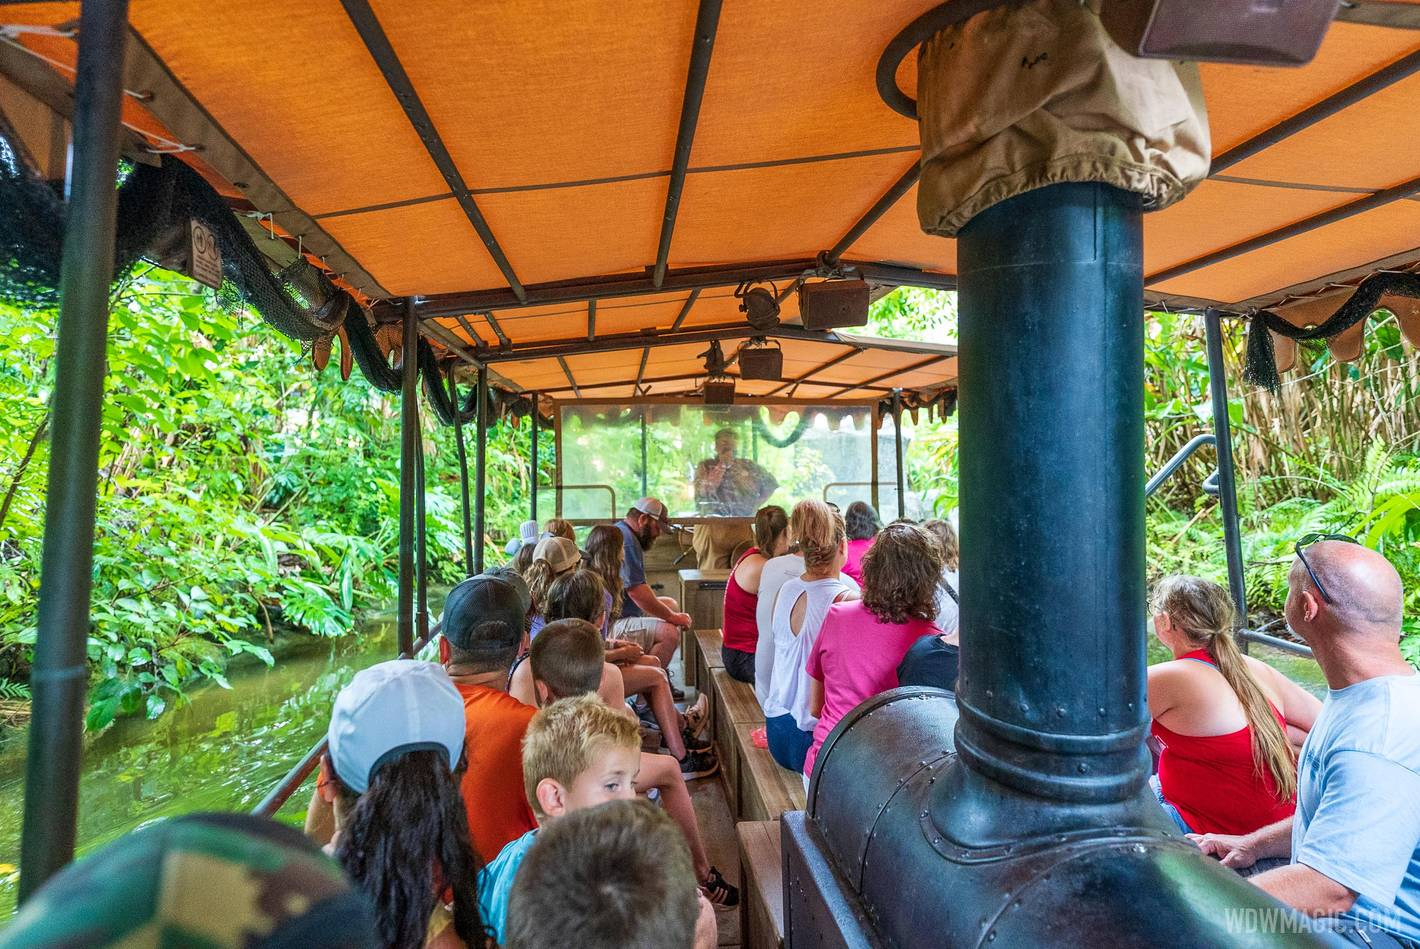 Even the middle bench is now in use at Jungle Cruise